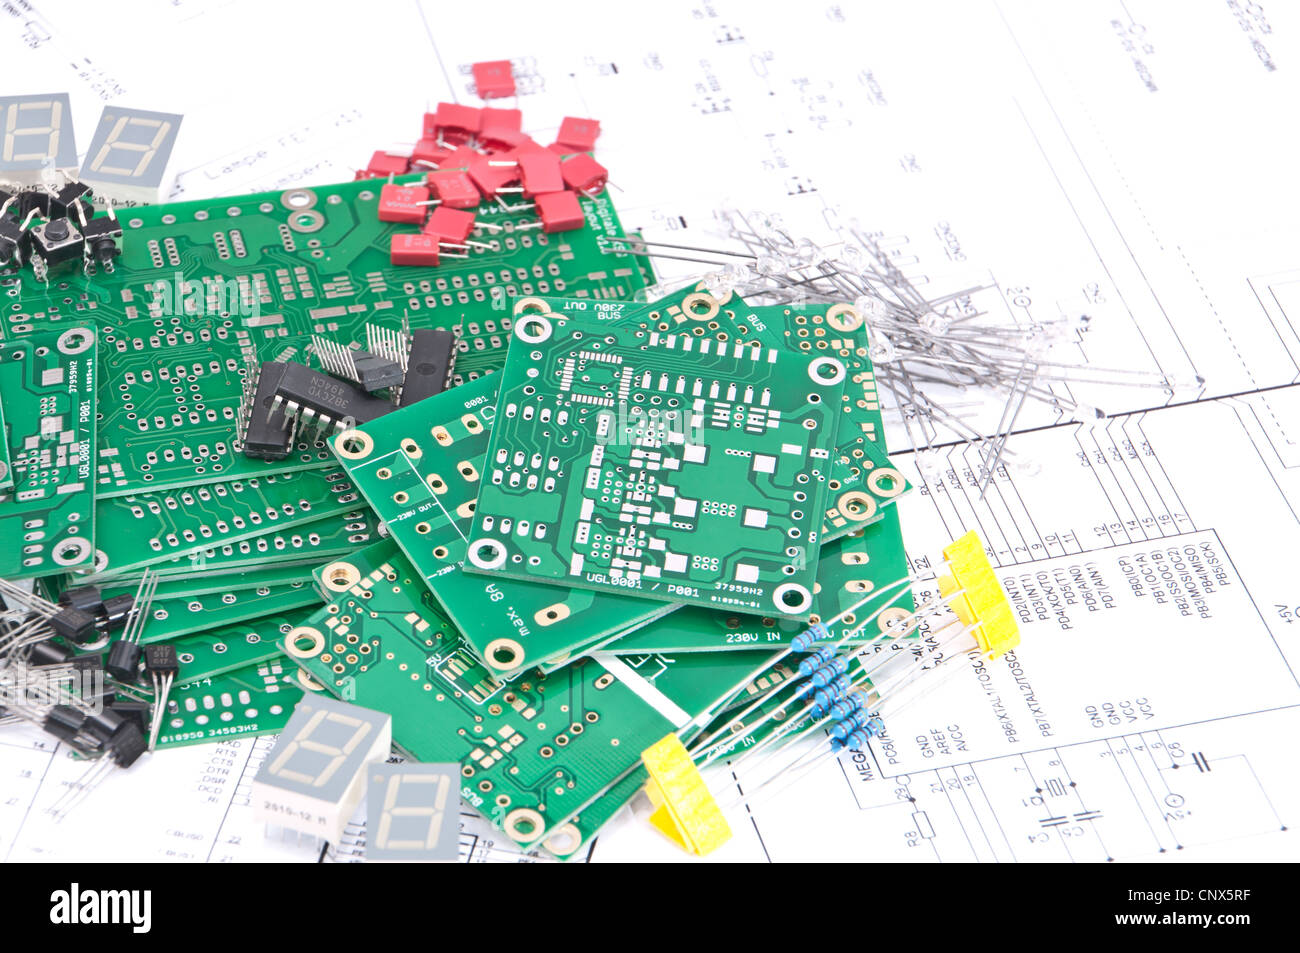 Circuit boards and electronic components with schematics in background - Stock Image